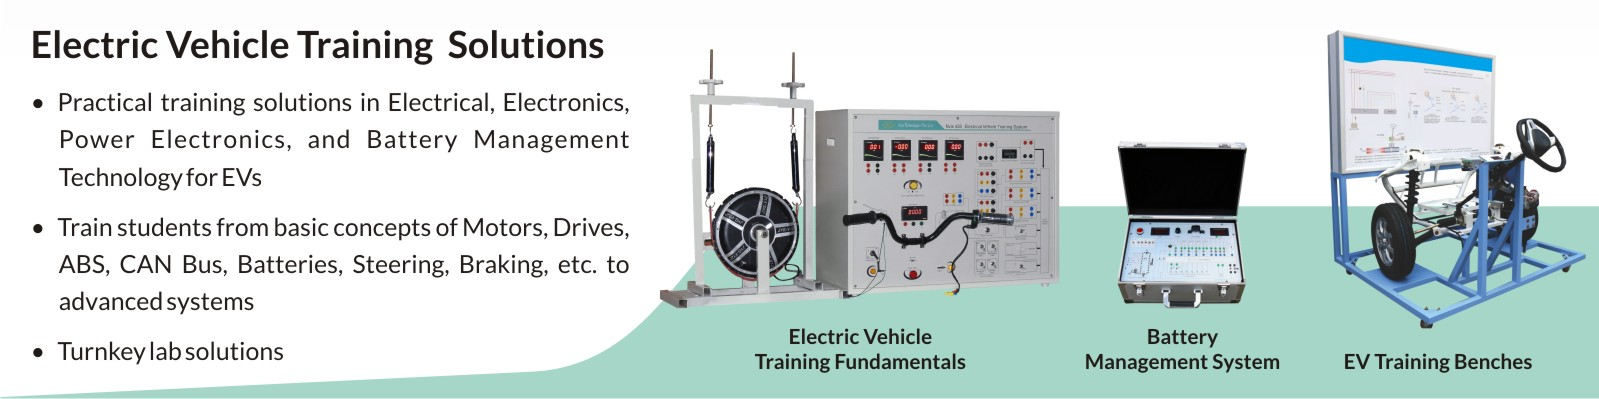 Electric Vehicle Training Solution